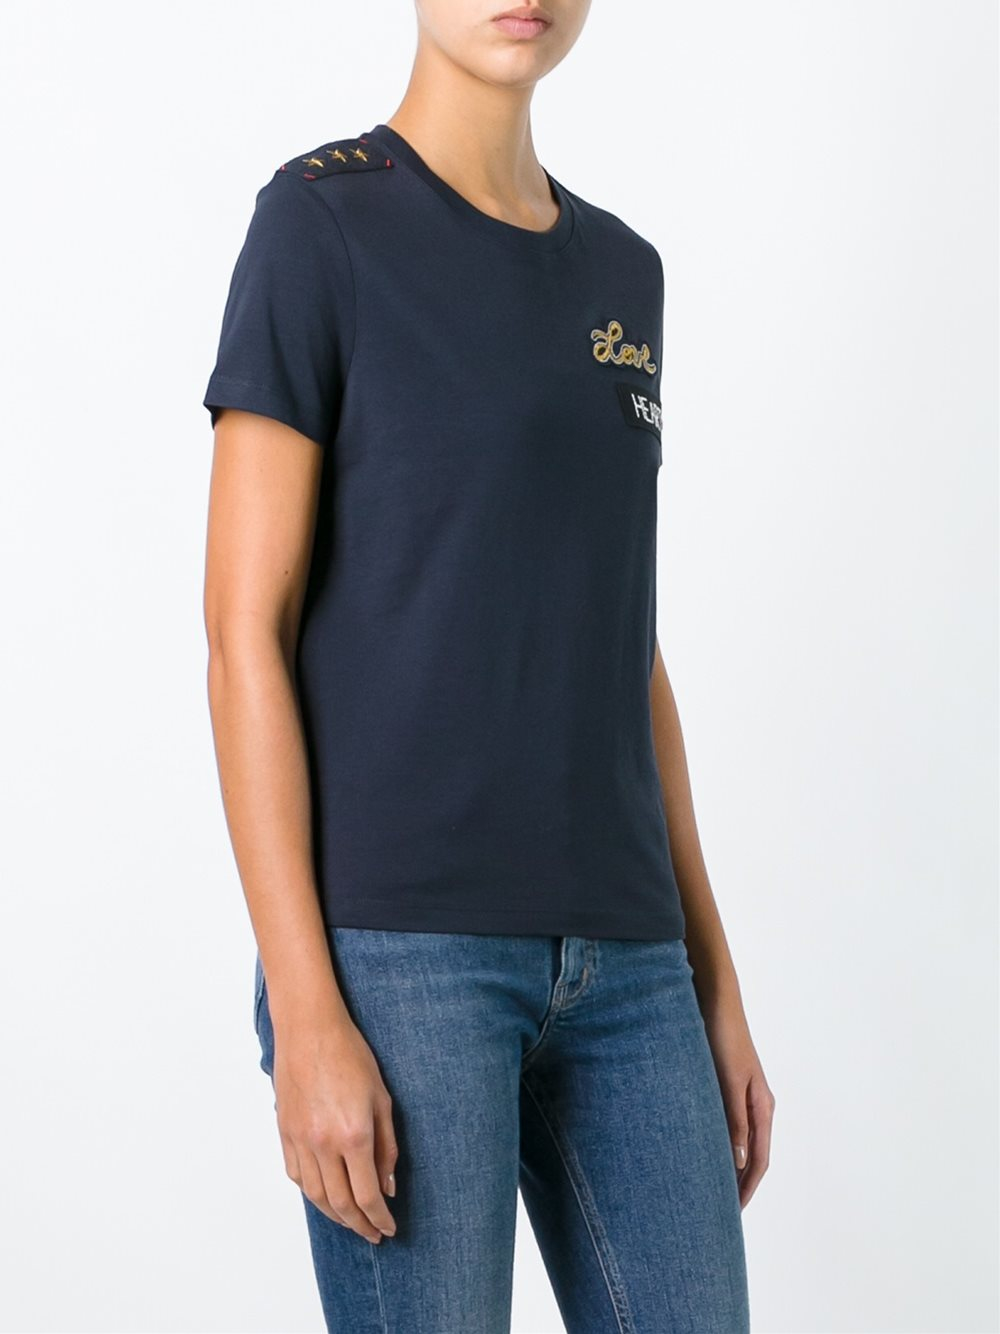 Red valentino 39 love 39 t shirt in blue lyst for Red valentino t shirt